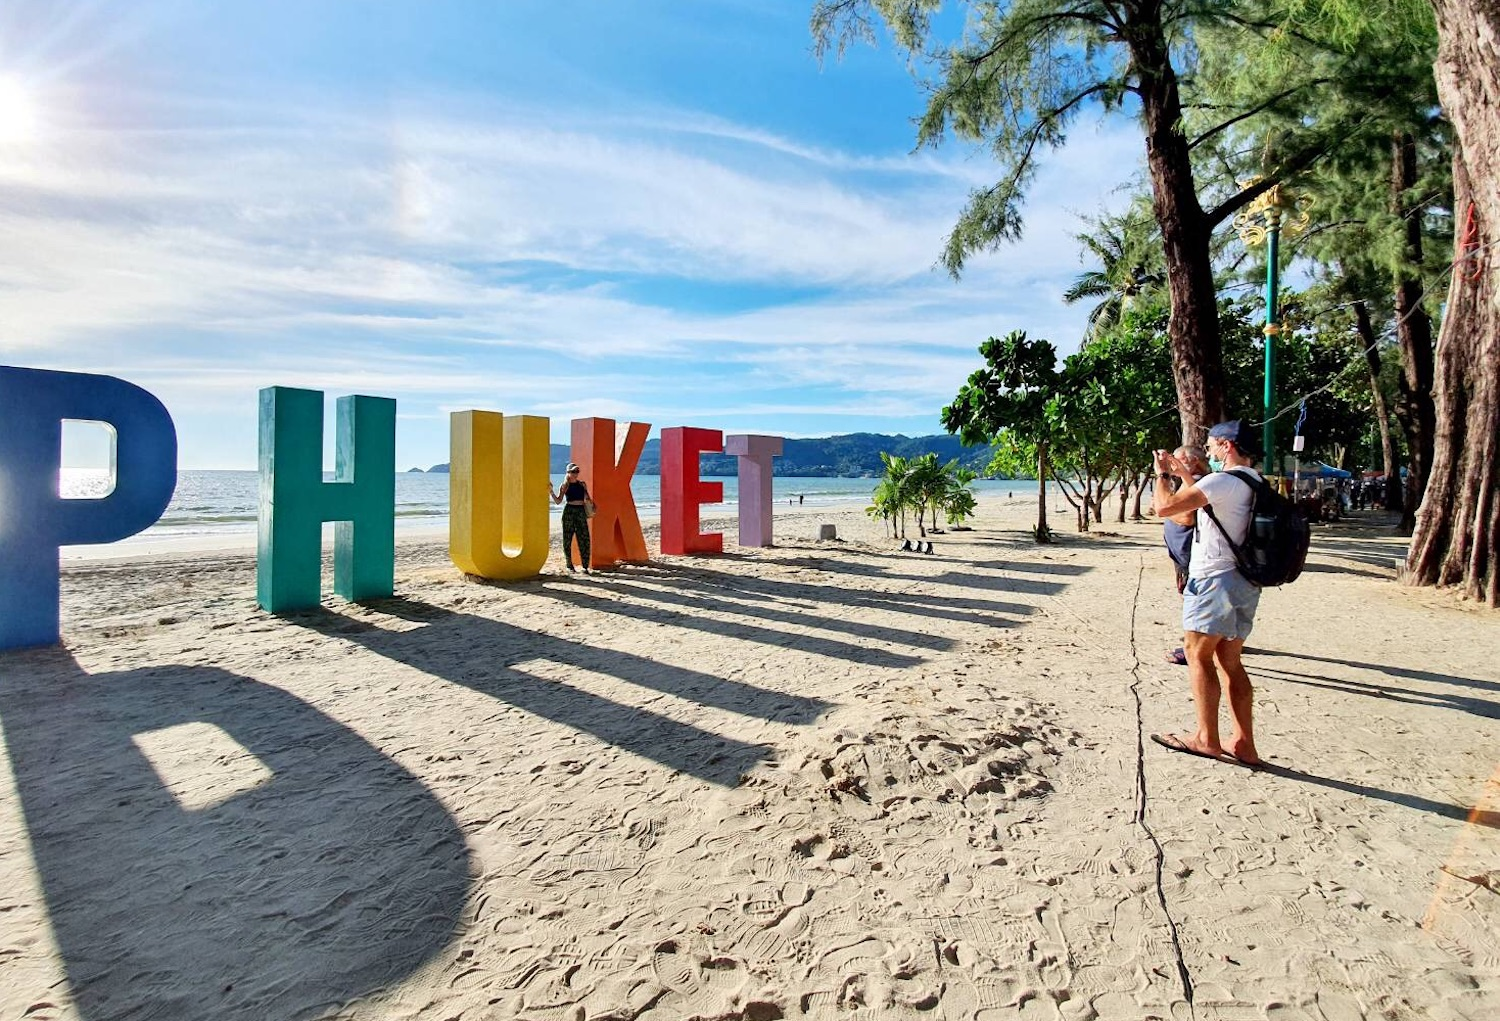 A tourist takes a picture on a beach in Phuket, which has been open to fully vaccinated international visitors since the start of July.